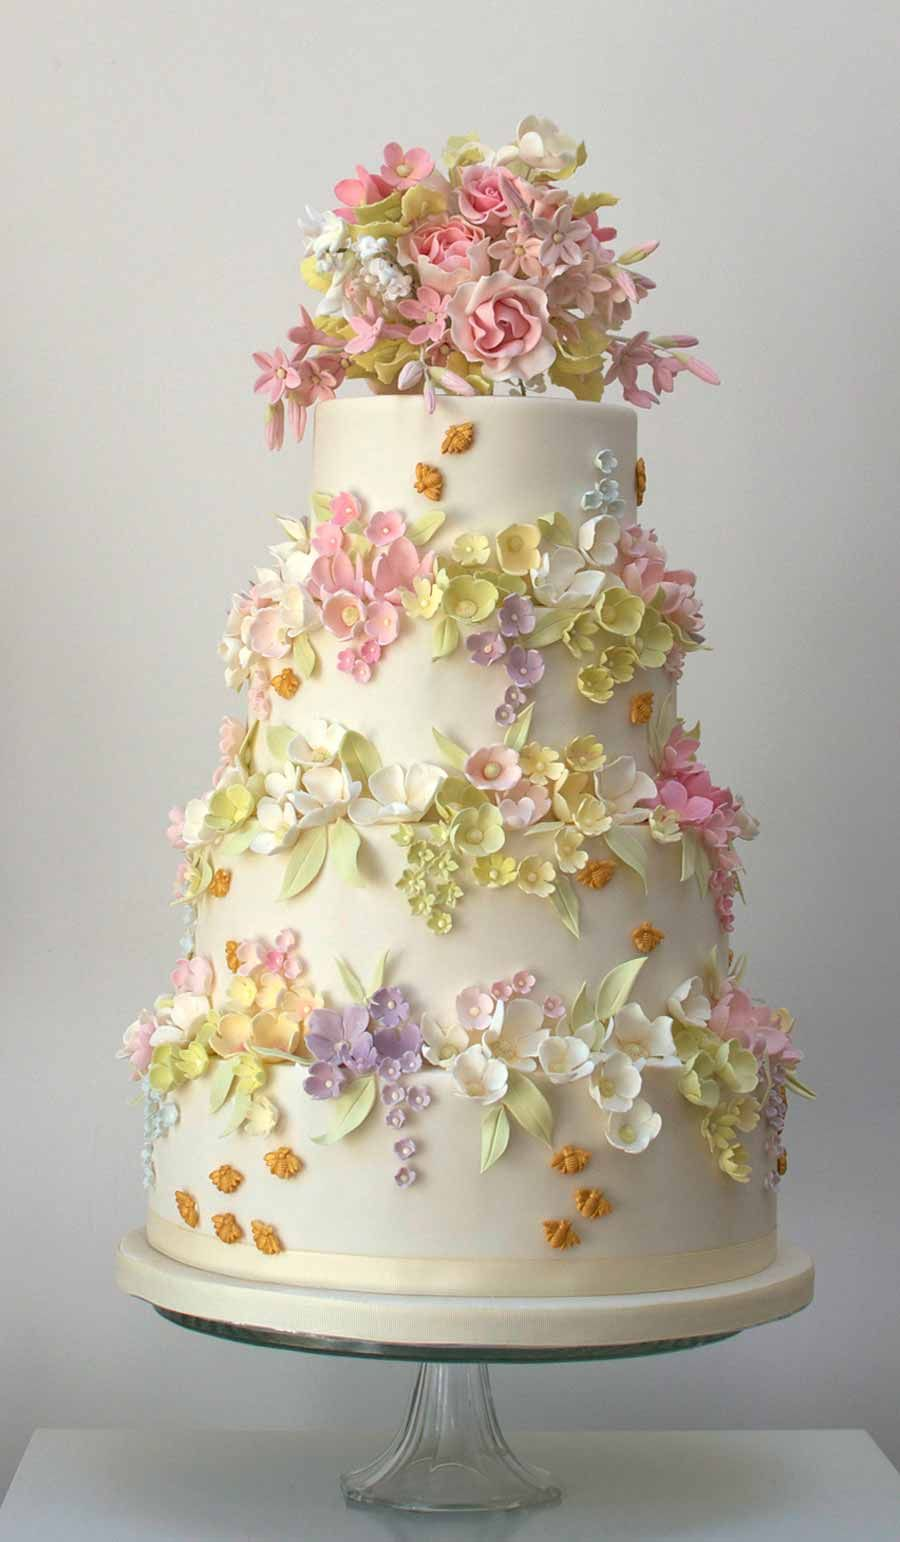 Photos Of Beautiful Birthday Cake : most beautiful birthday cakes in the world - Google Search ...